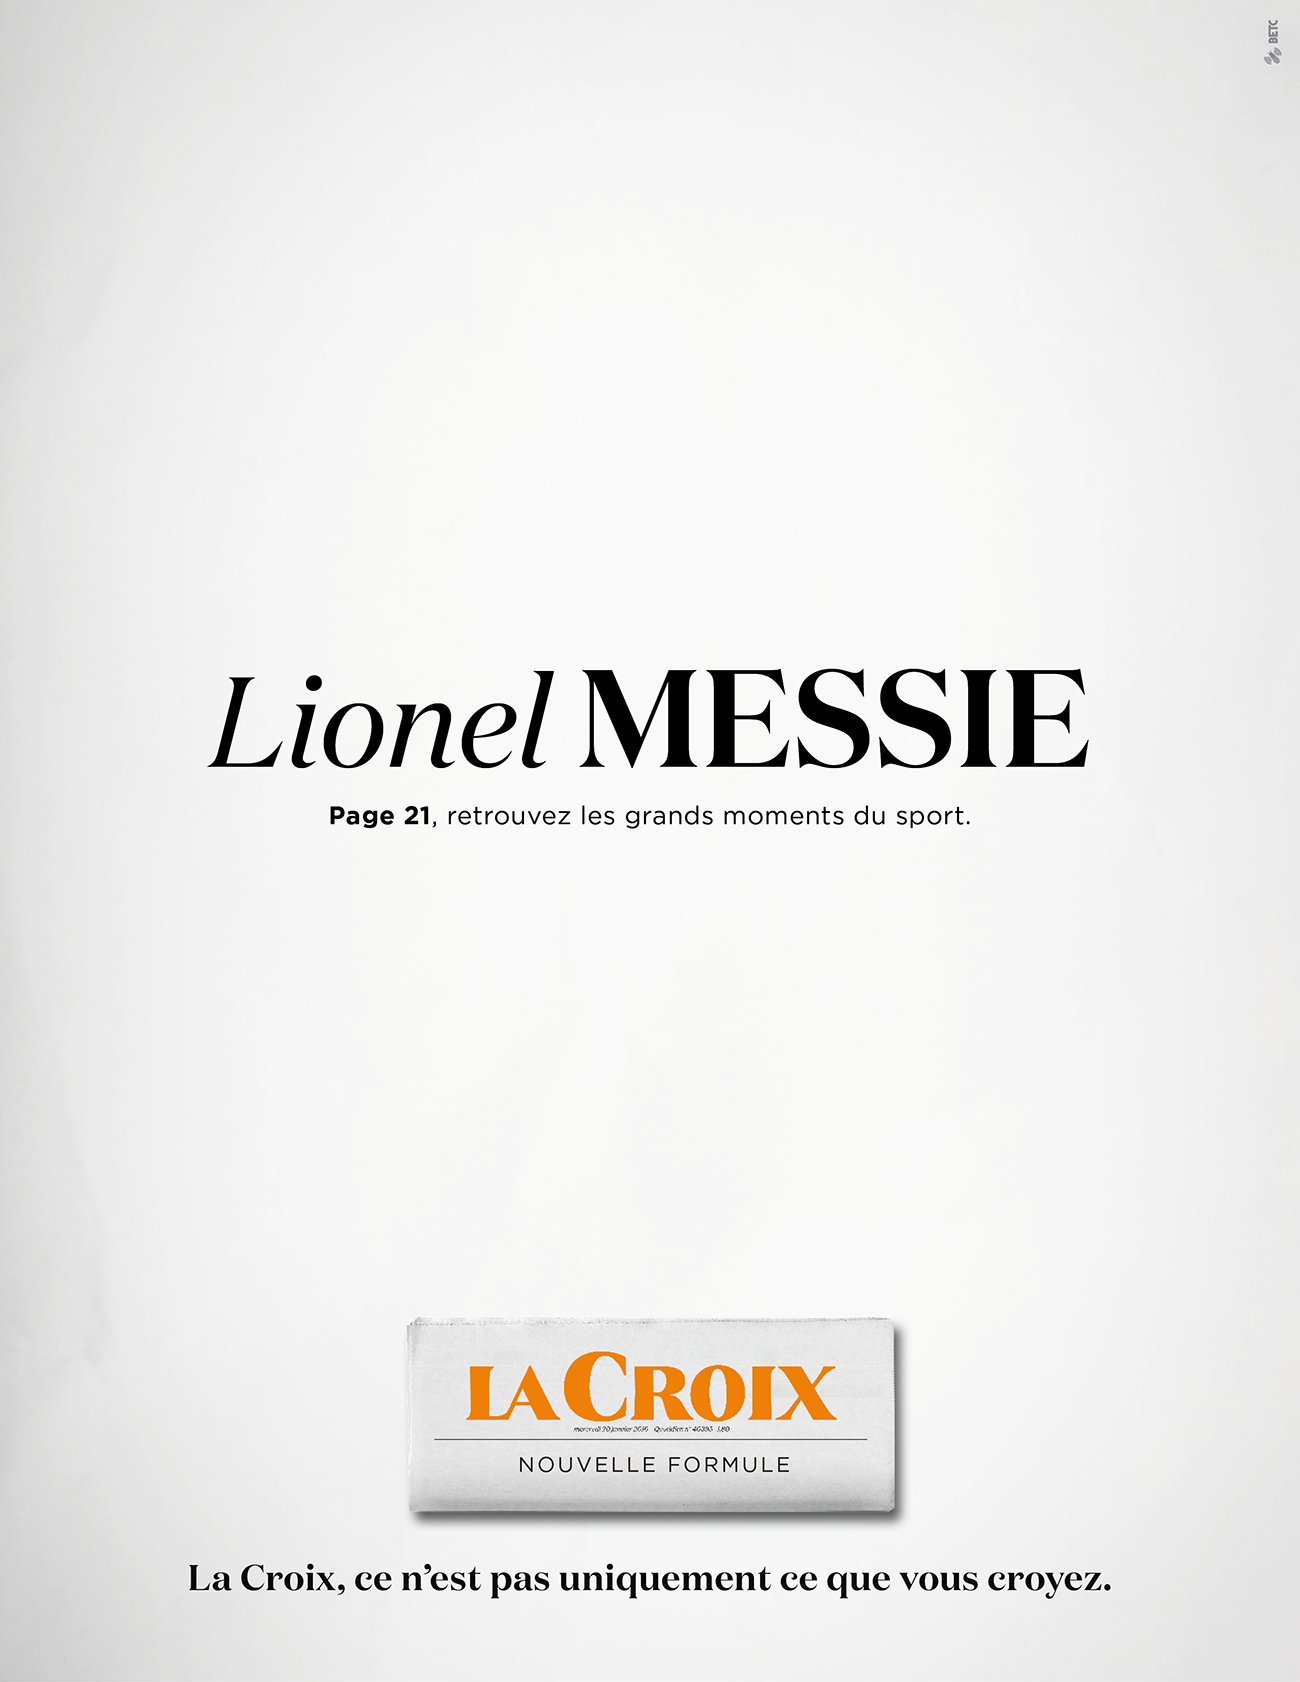 journal-la-croix-nouvelle-formule-2016-religion-football-economie-churchill-lionel-messie-agence-betc-3